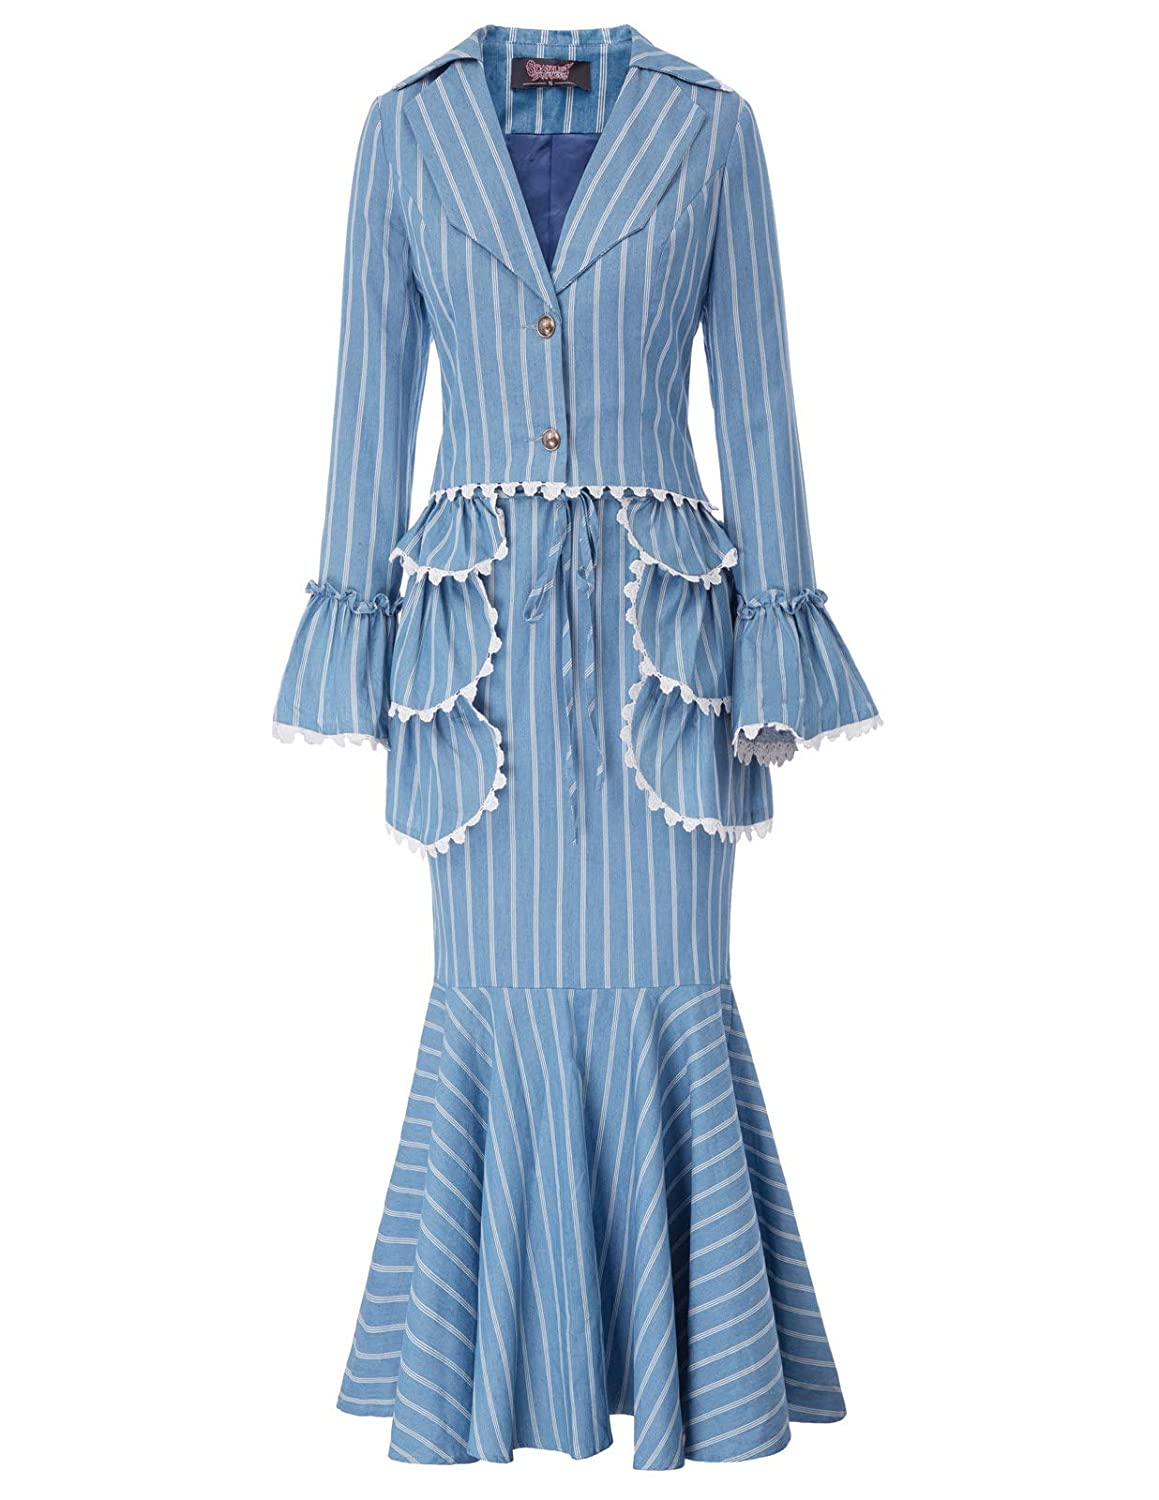 Victorian Dresses | Victorian Ballgowns | Victorian Clothing Women 3pcs Set Vintage Victorian Costume Edwardian Suit Coat+Skirt+Apron $59.99 AT vintagedancer.com